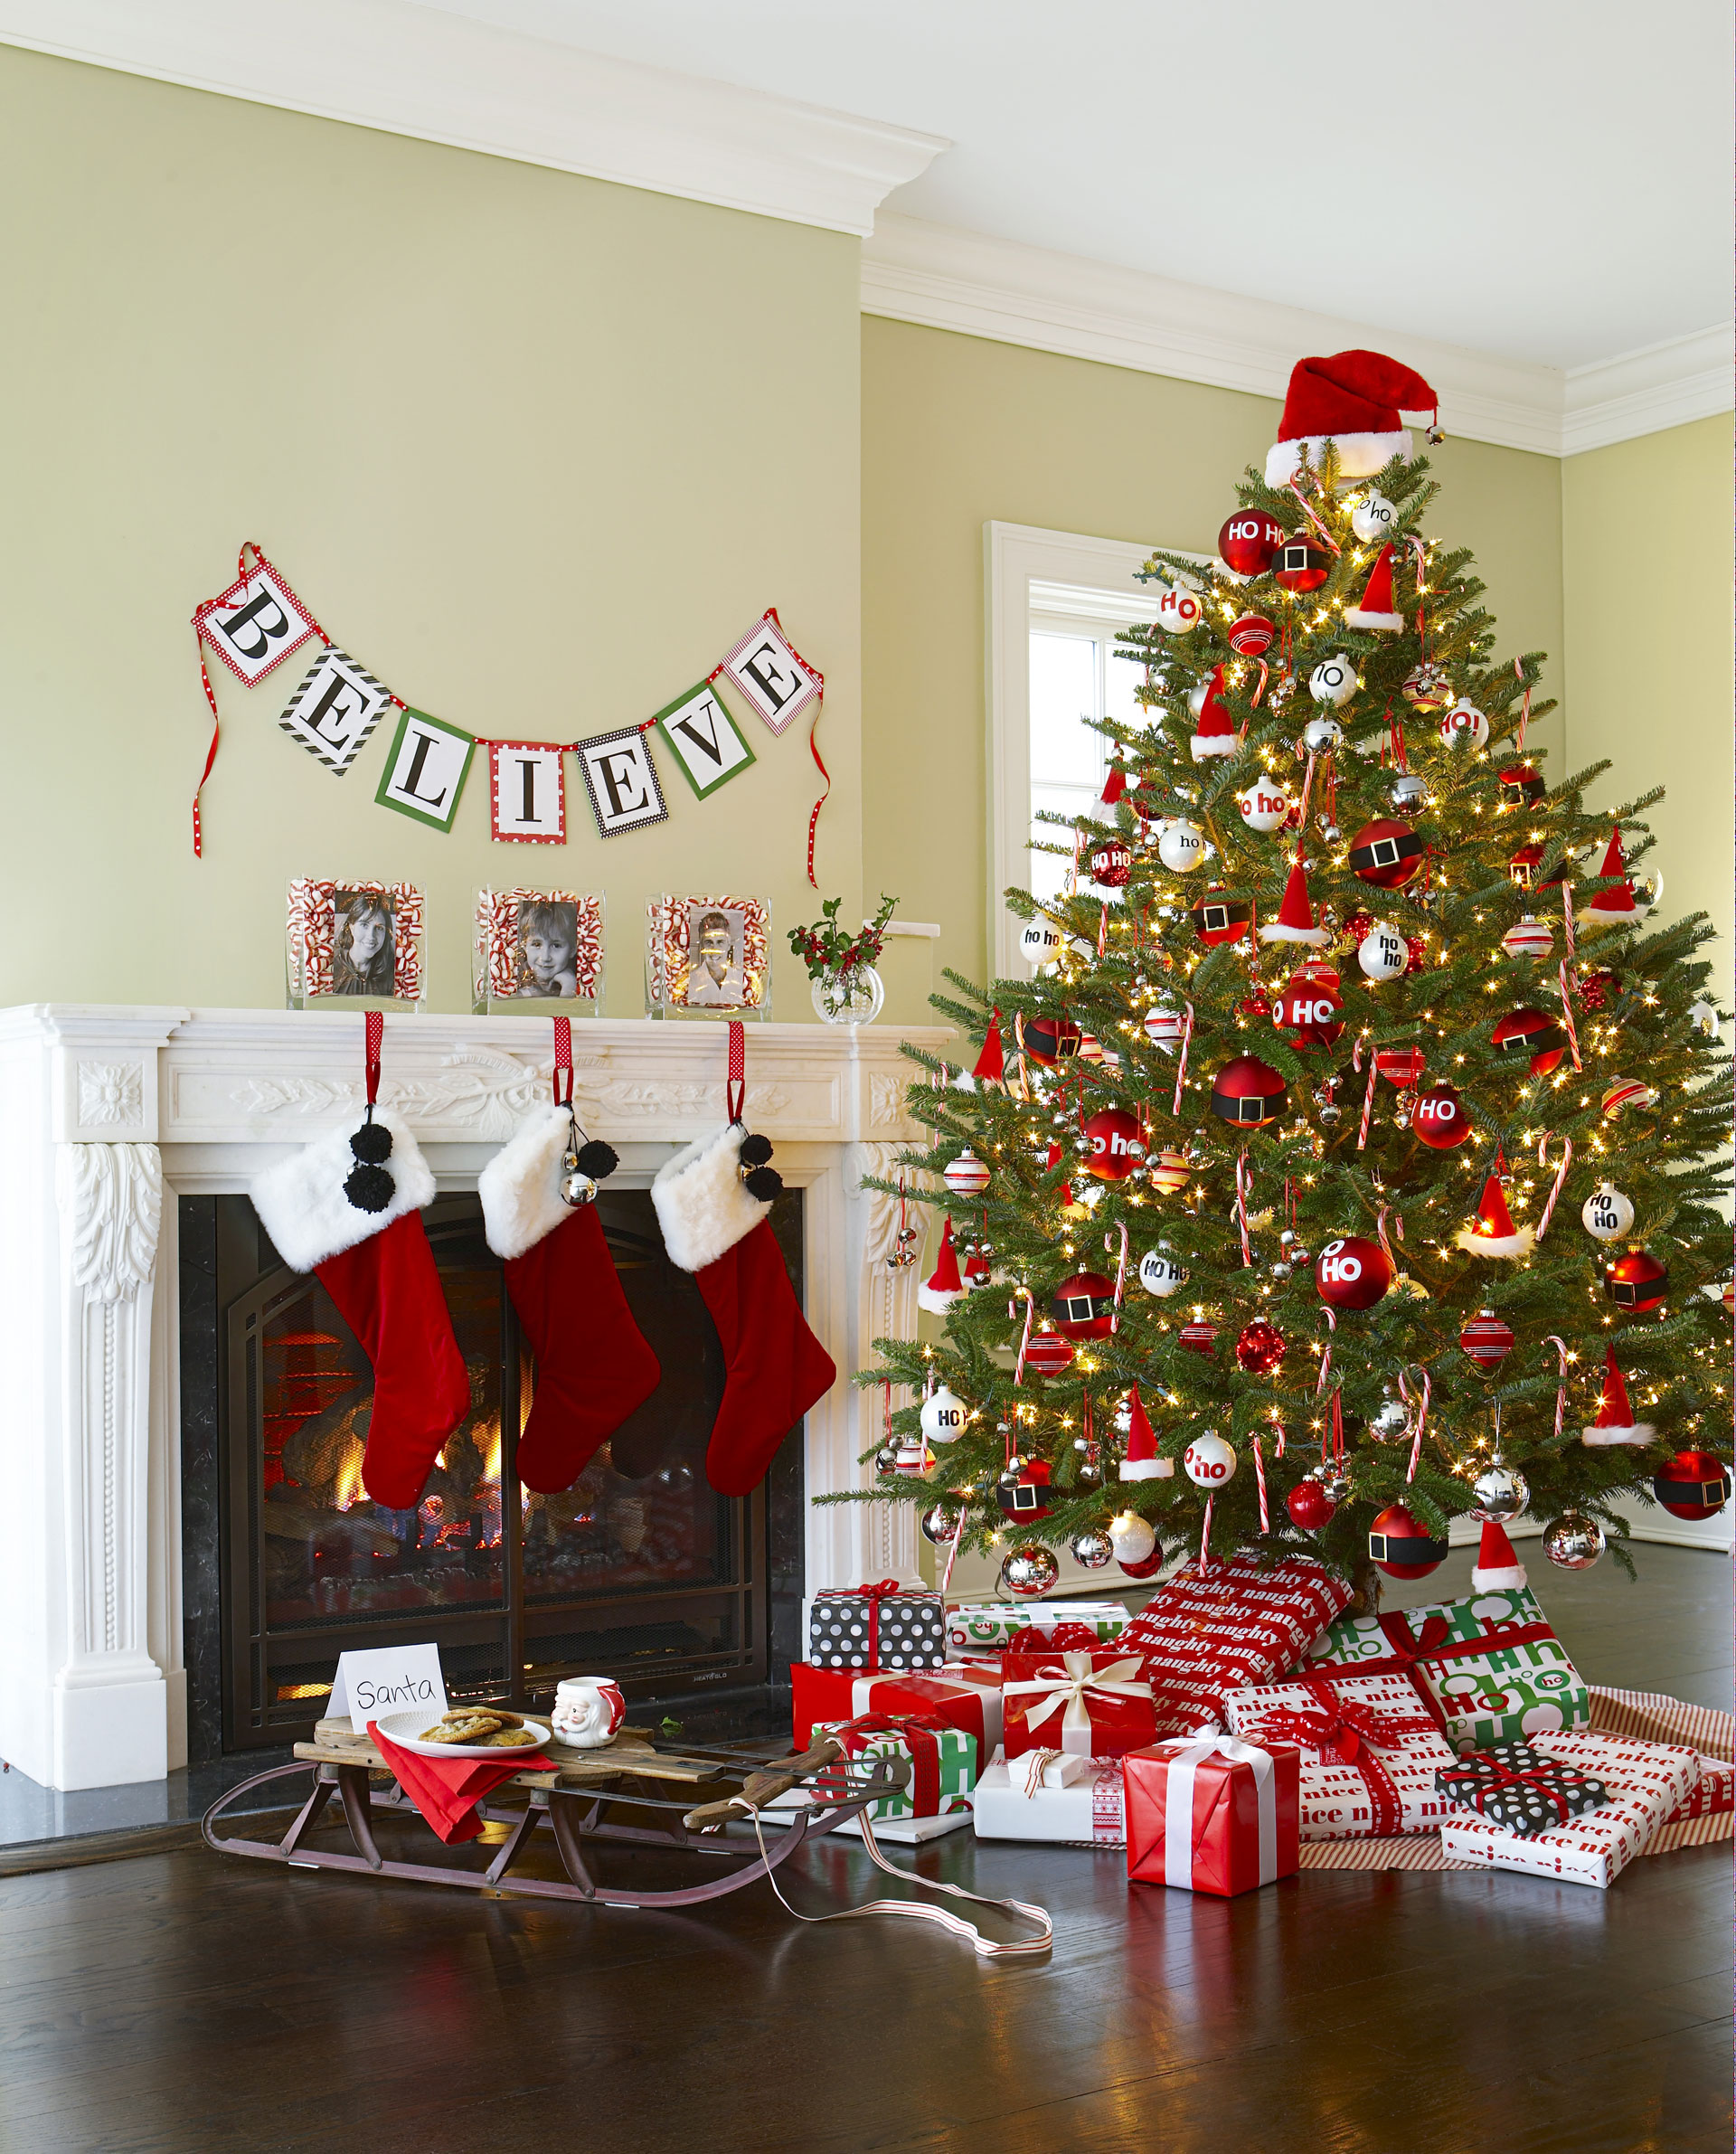 Christmas Themes For Decorating 5 best christmas party themes - ideas for a holiday party